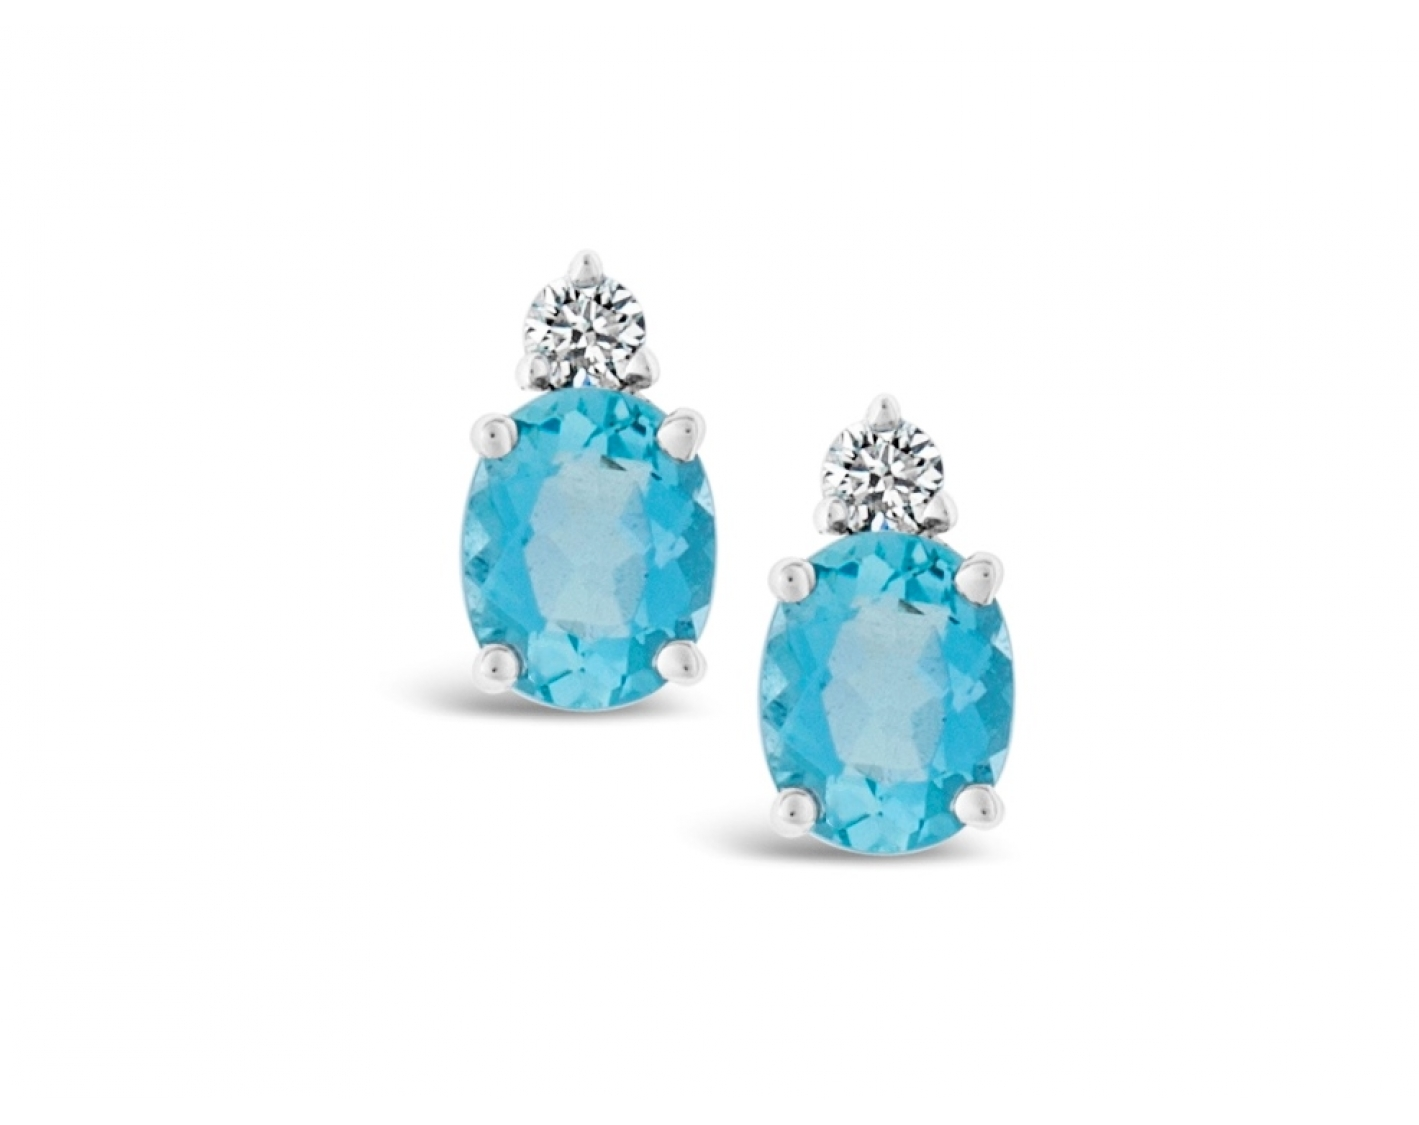 18k white gold oval cut aquamarine earrings with diamond round upstone Photos & images